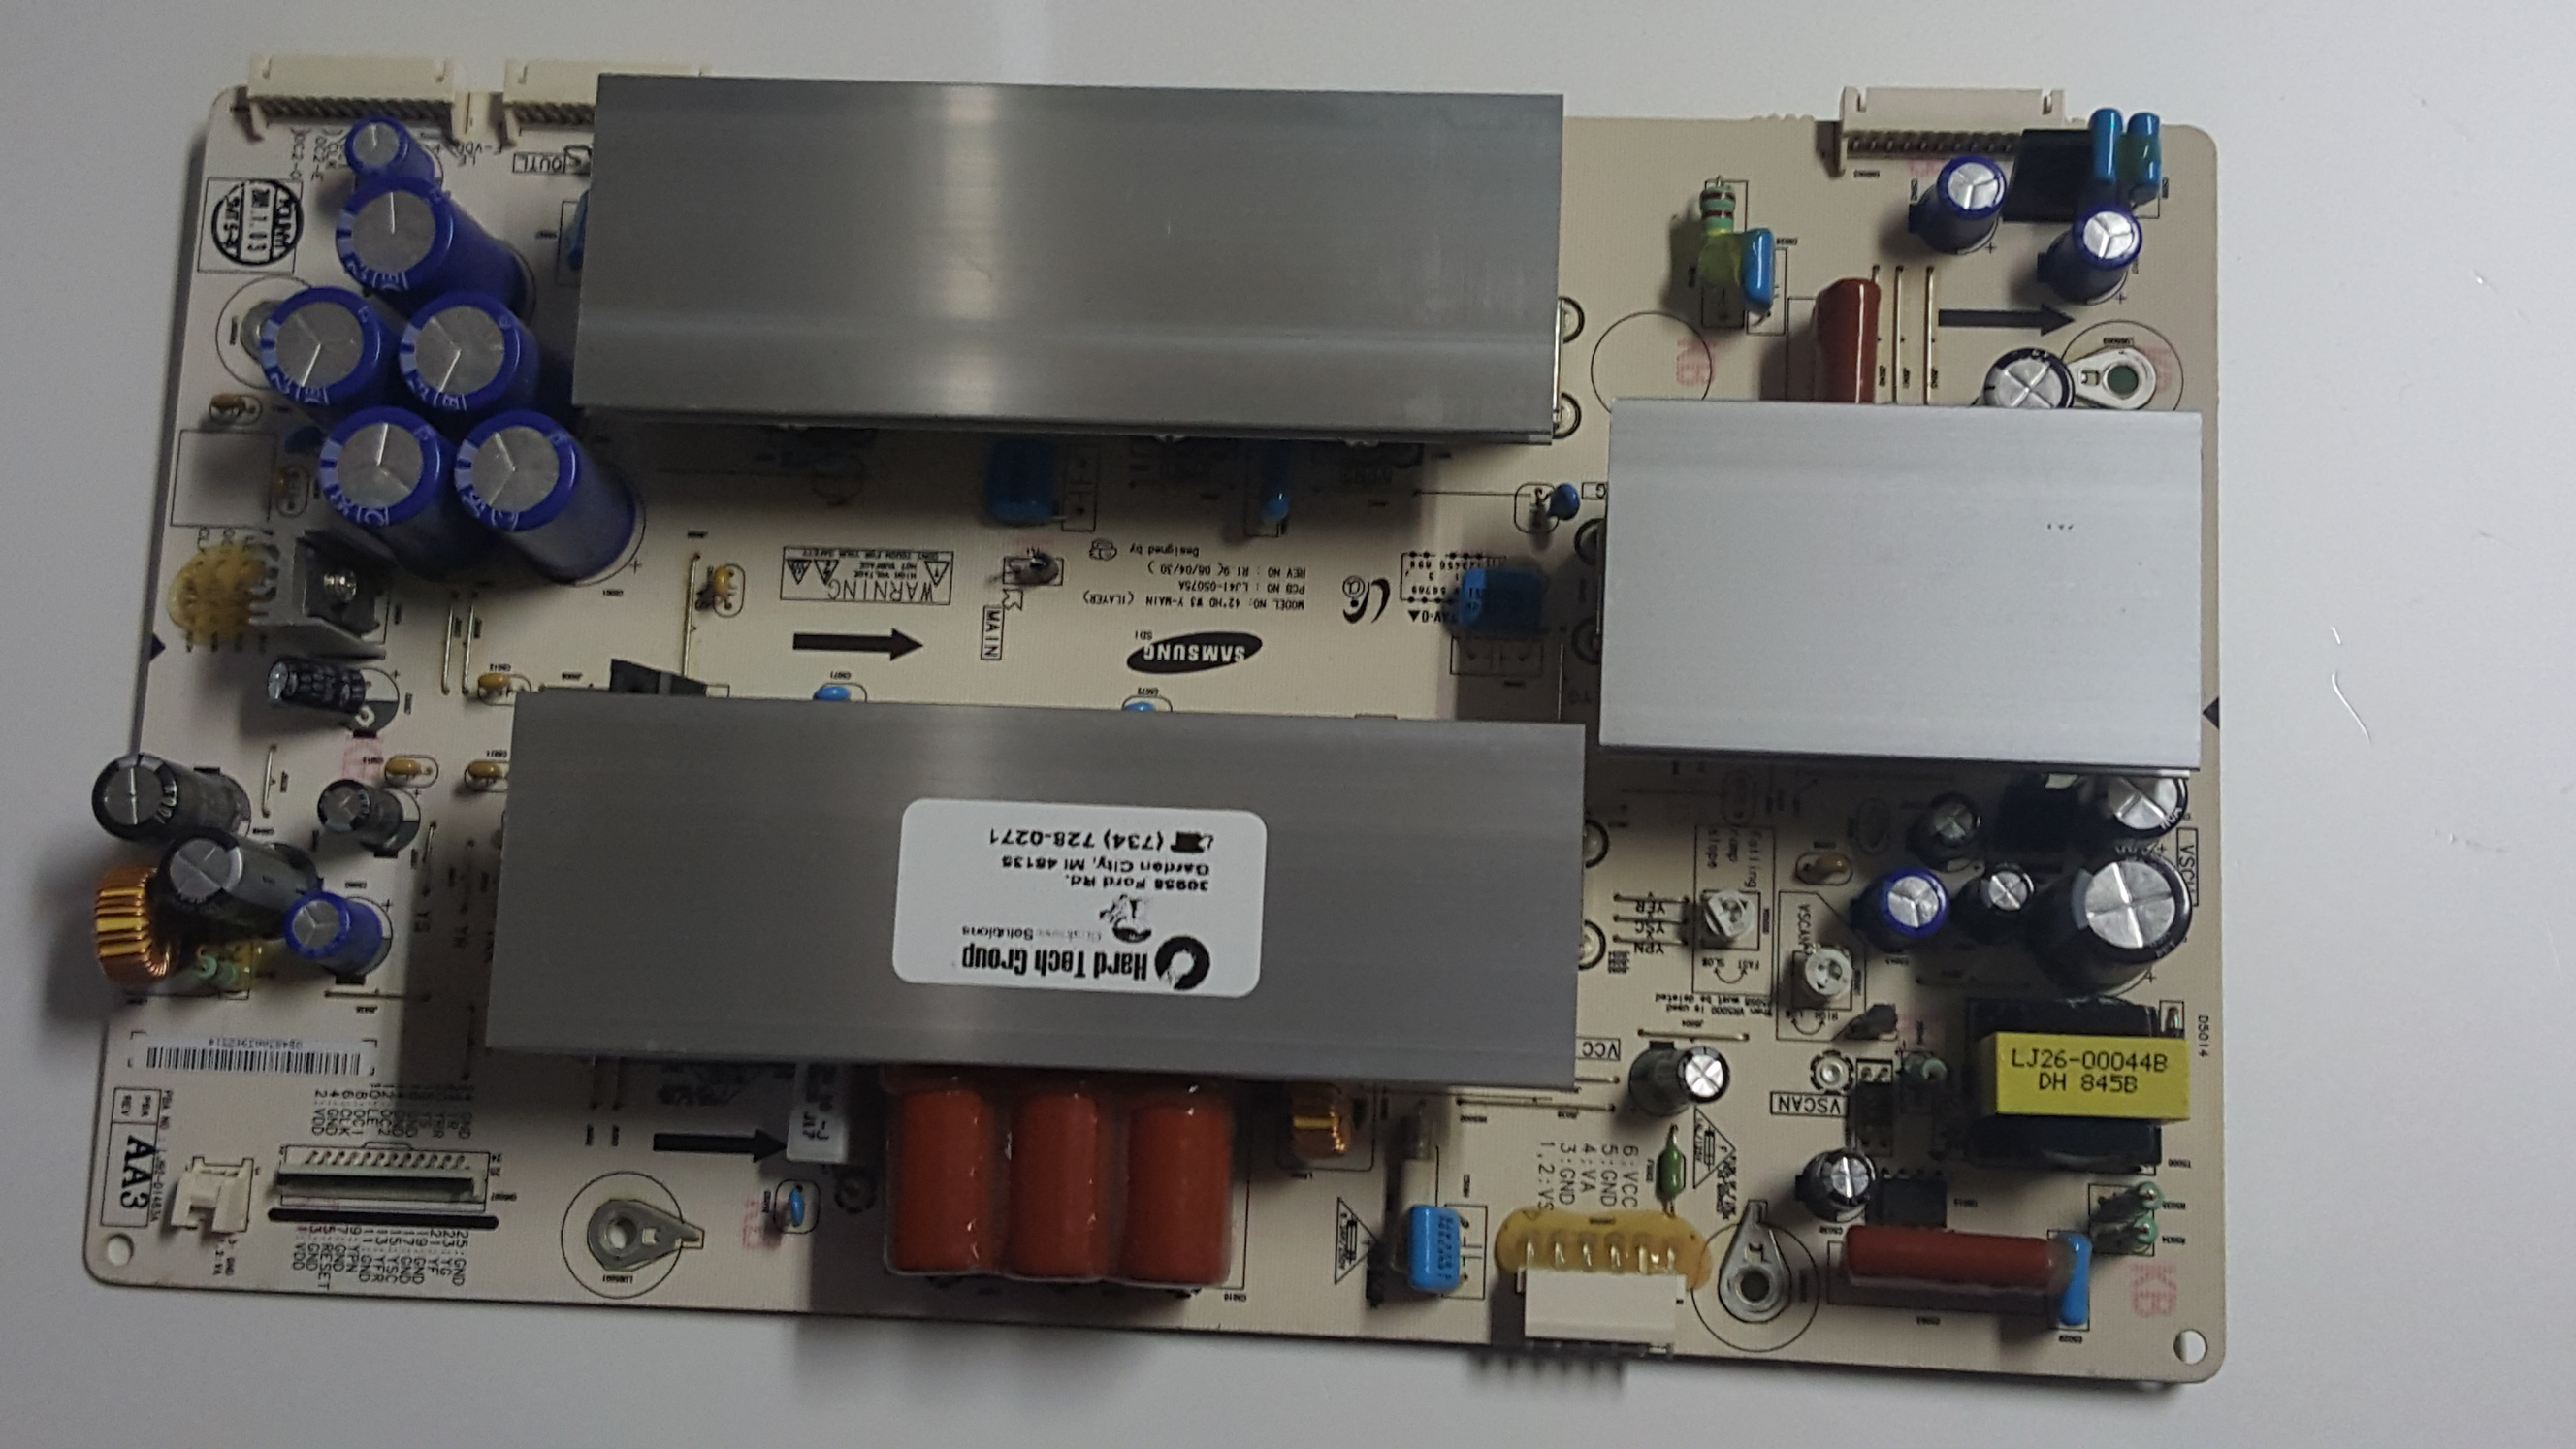 Vizio Vp422 Y Sustain Main Board PN: Lj41-05075a